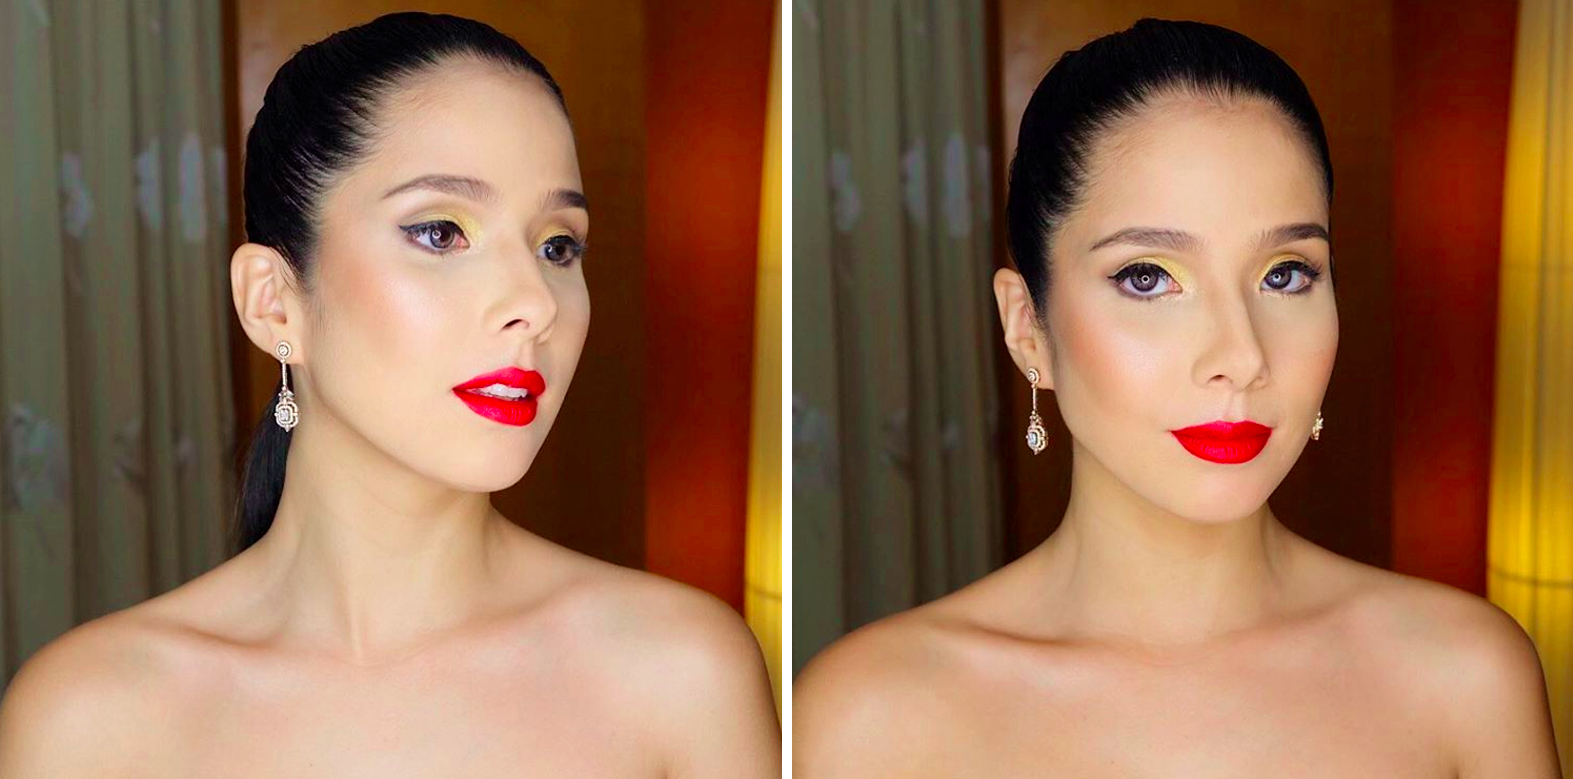 Jigs' perfect cat eye look on Maxene Magalona / image via @jigsmayuga on Instagram